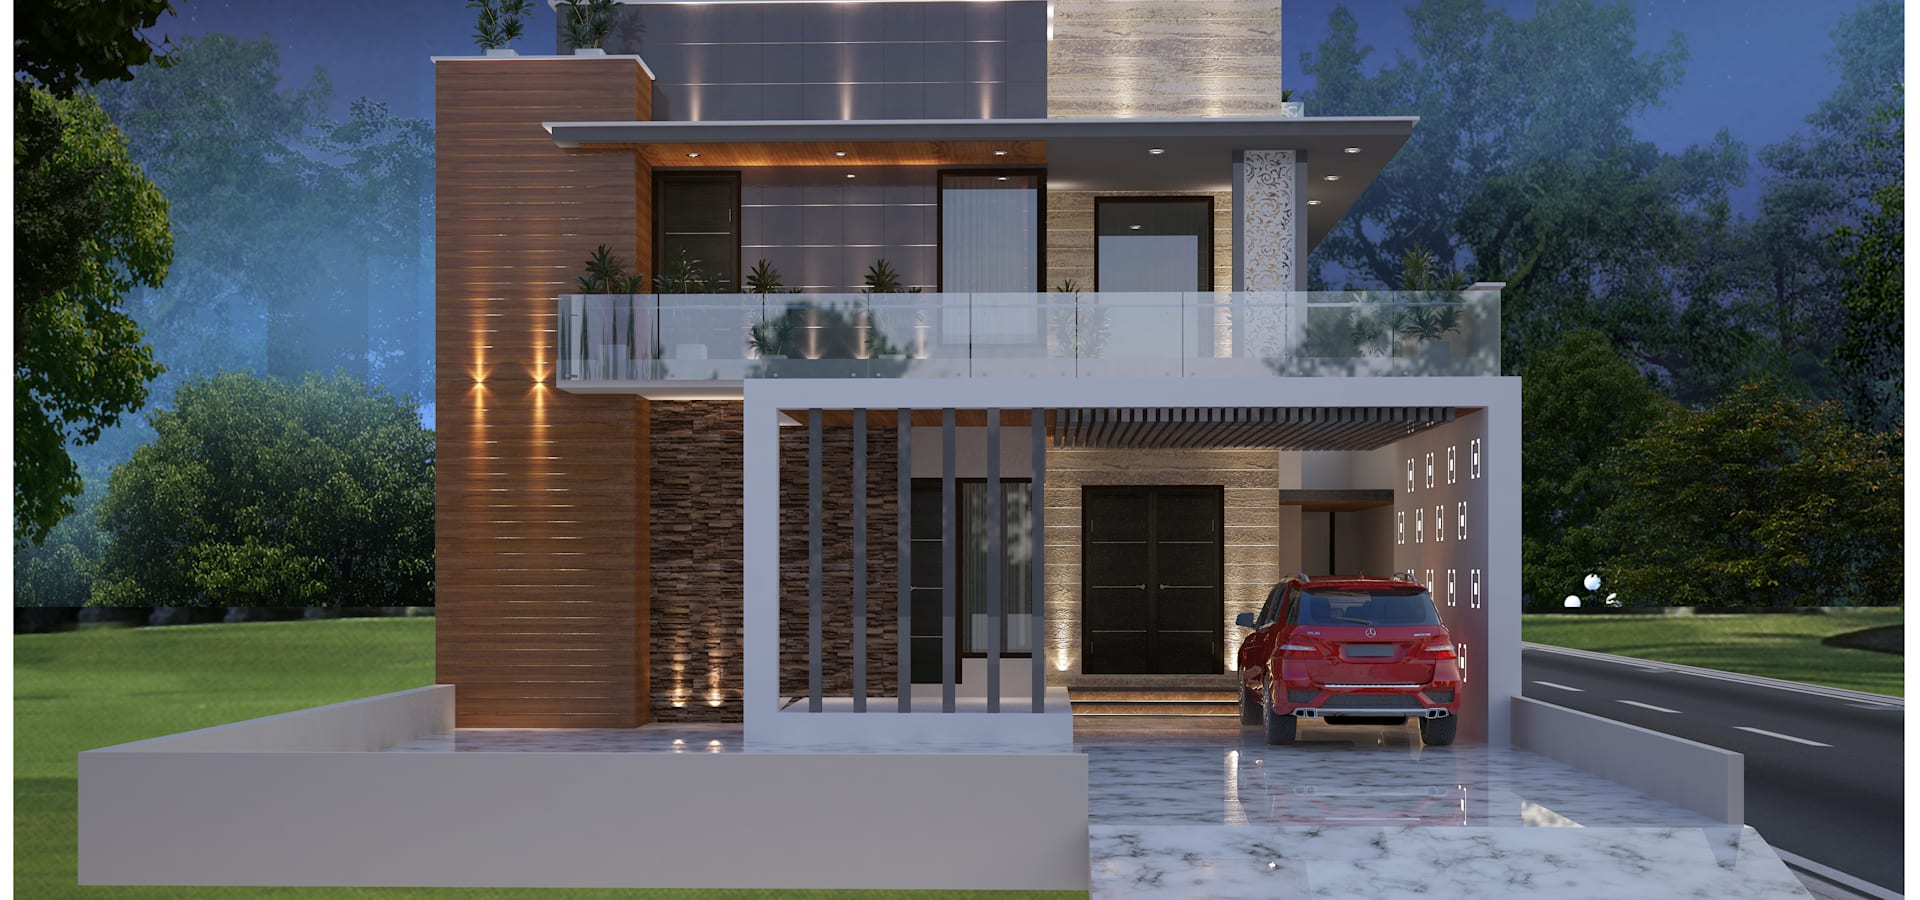 Changing The Front Elevation Of A House : Moon arc architects in ludhiana homify